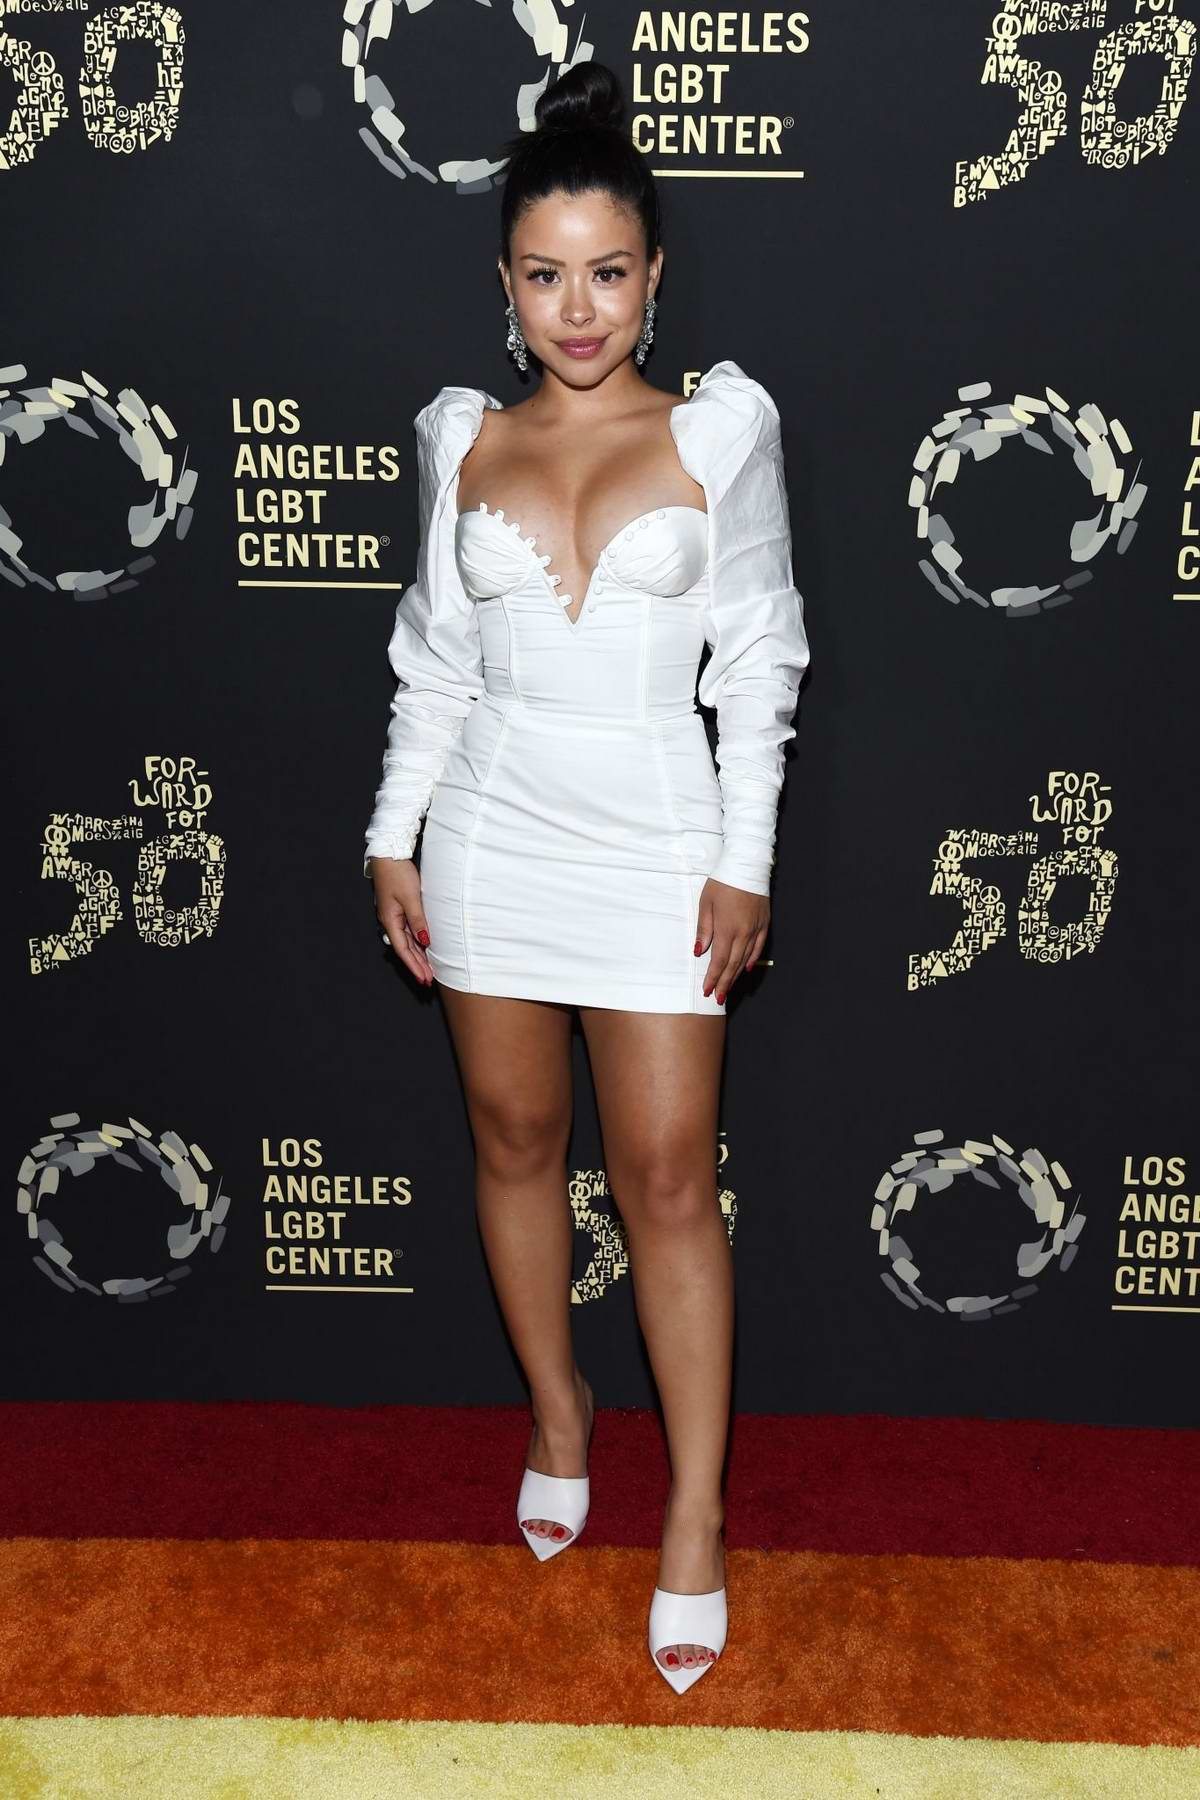 Cierra Ramirez attends the Los Angeles LGBT Center 50th Anniversary event at The Greek Theatre in Los Angeles